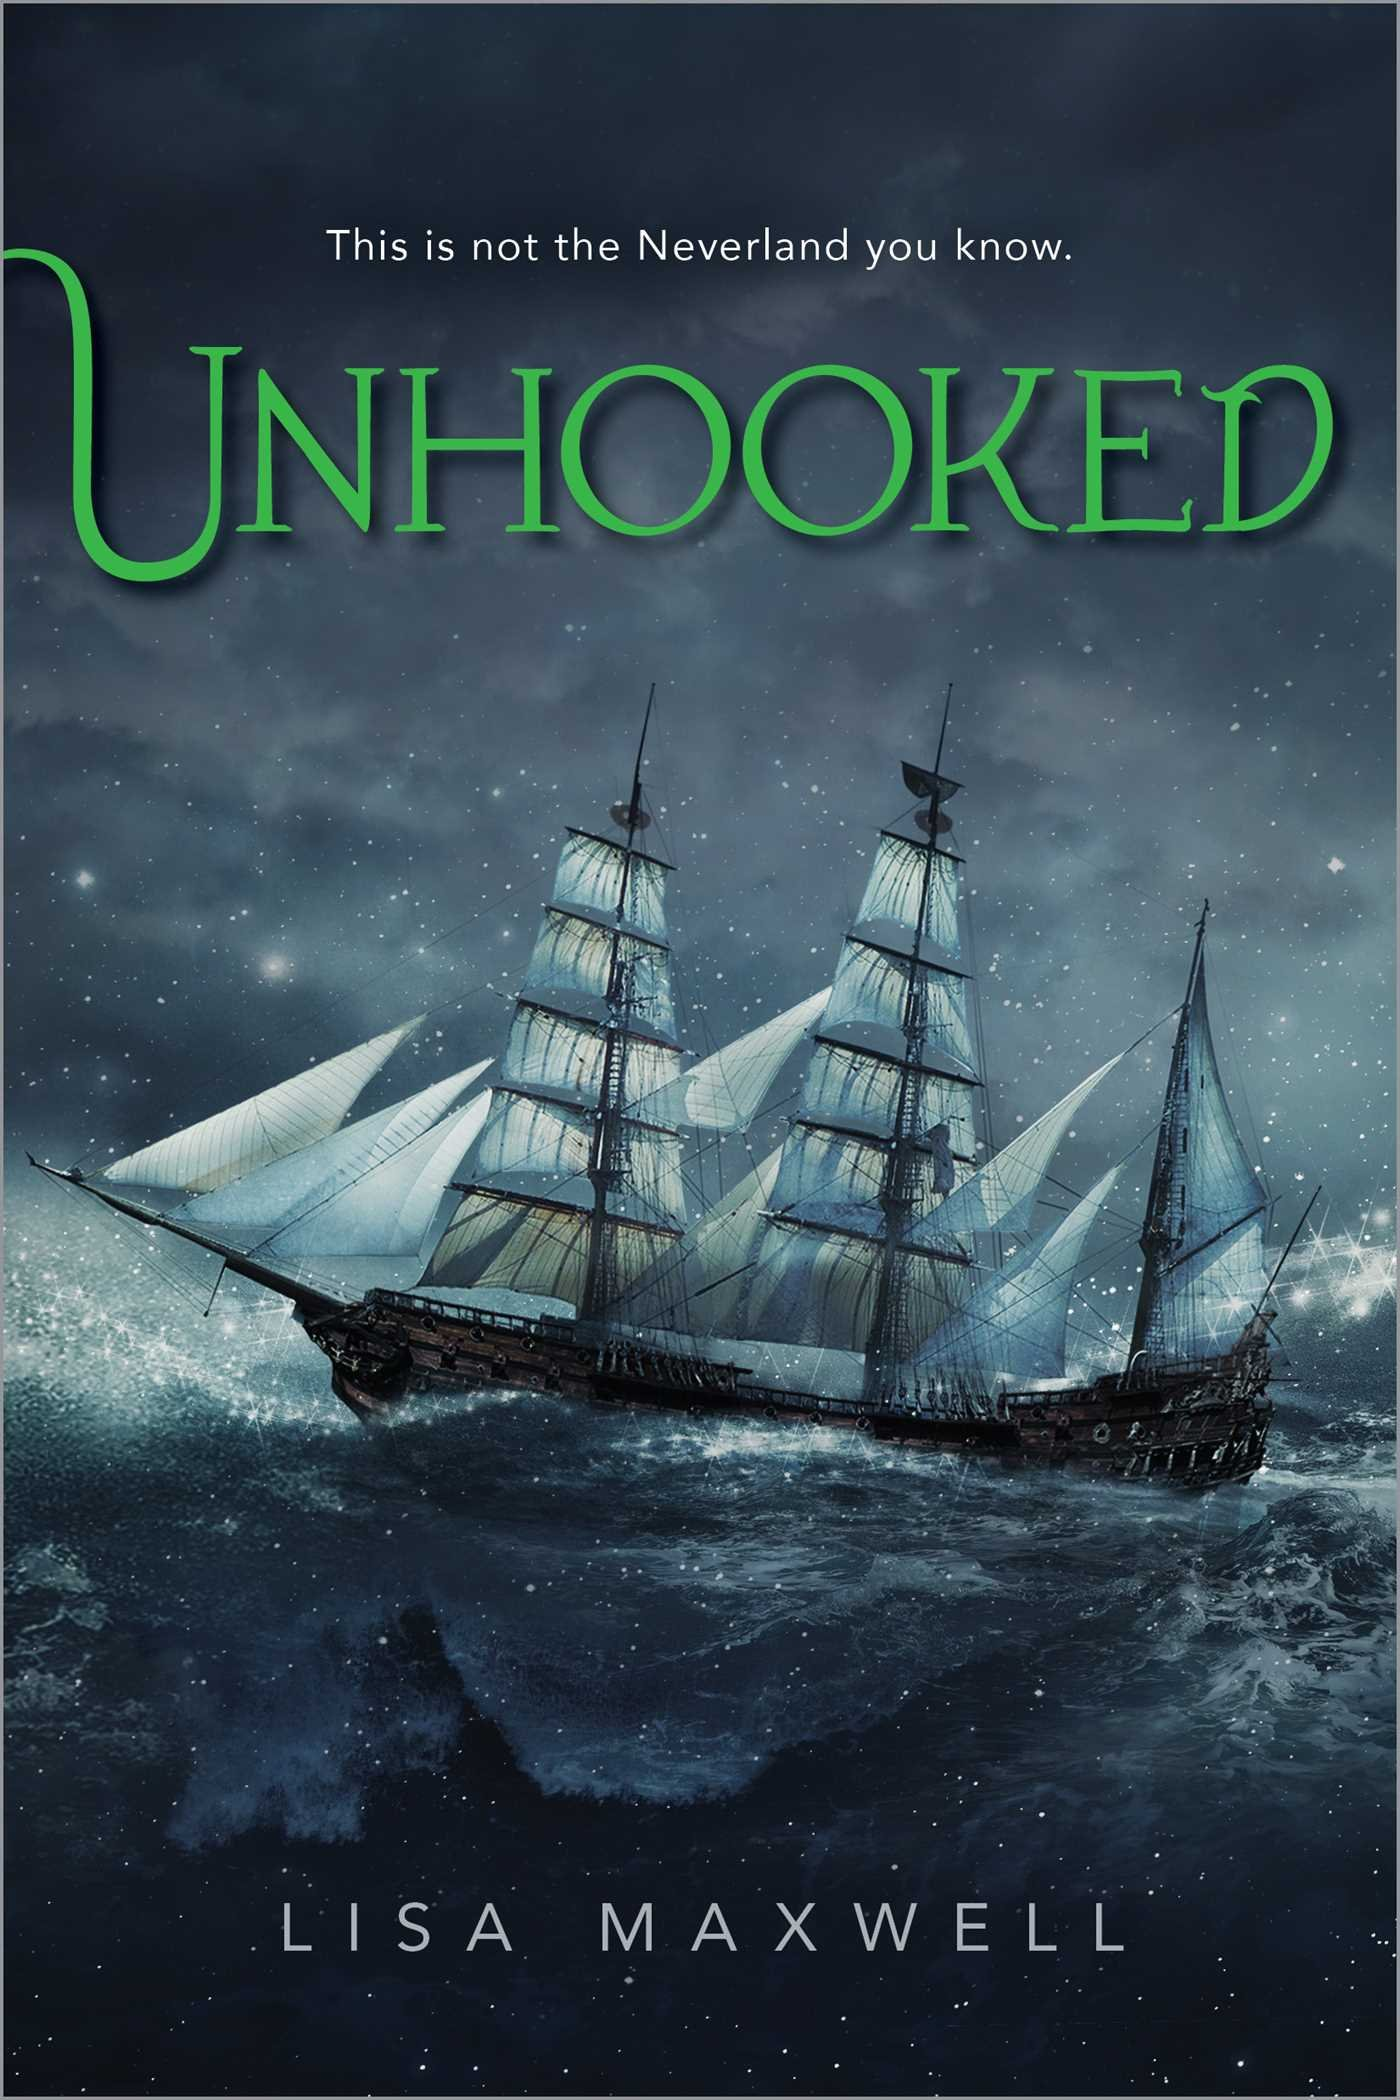 Amazon.com: Unhooked (9781481432054): Maxwell, Lisa: Books